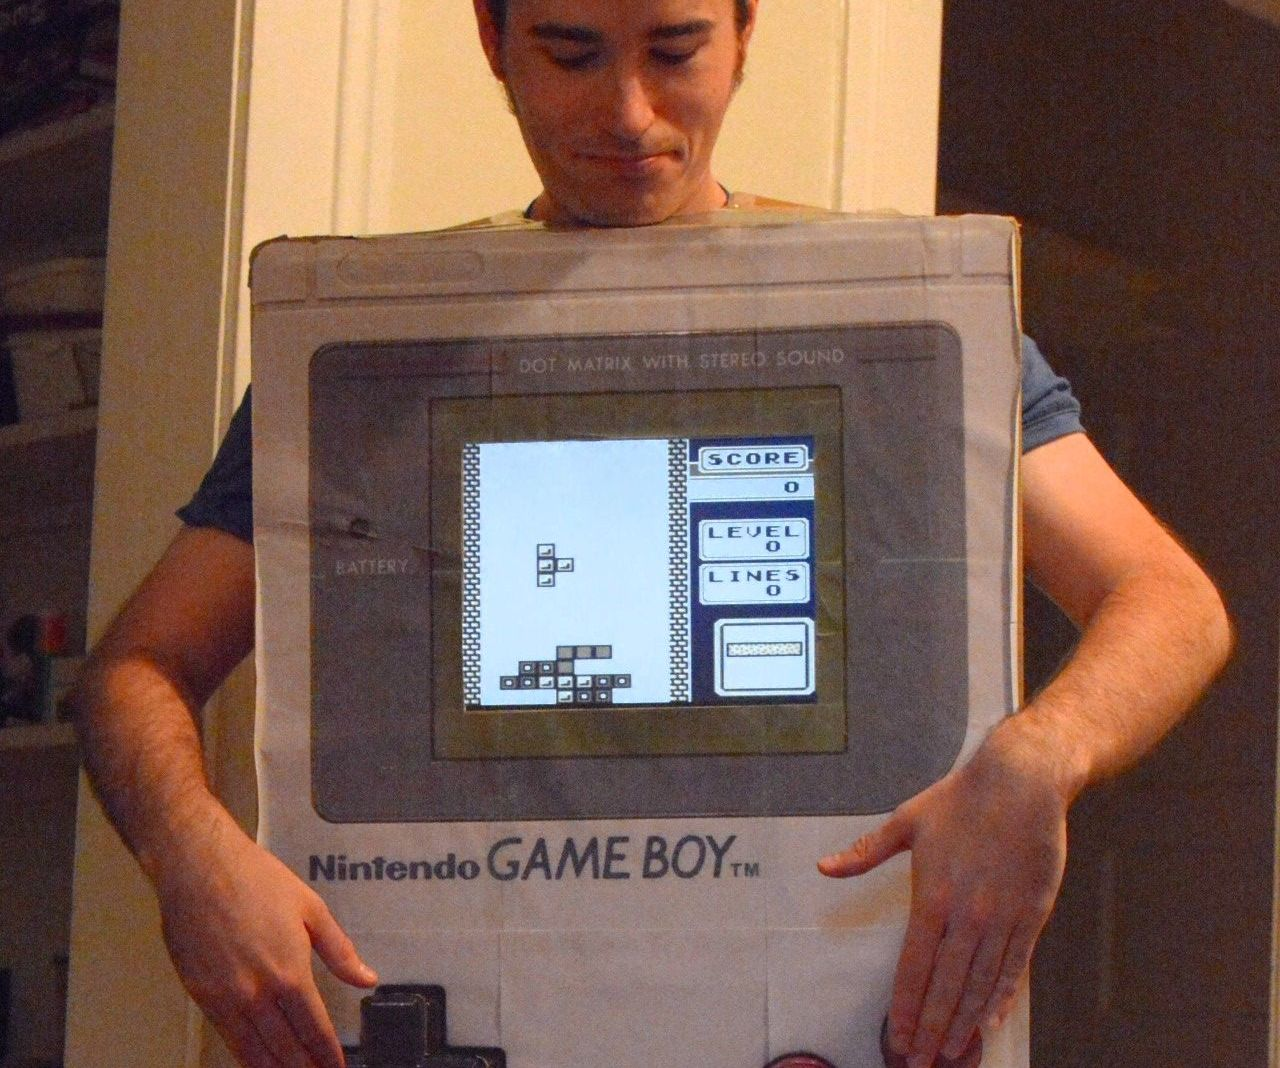 Playable Giant Gameboy Costume